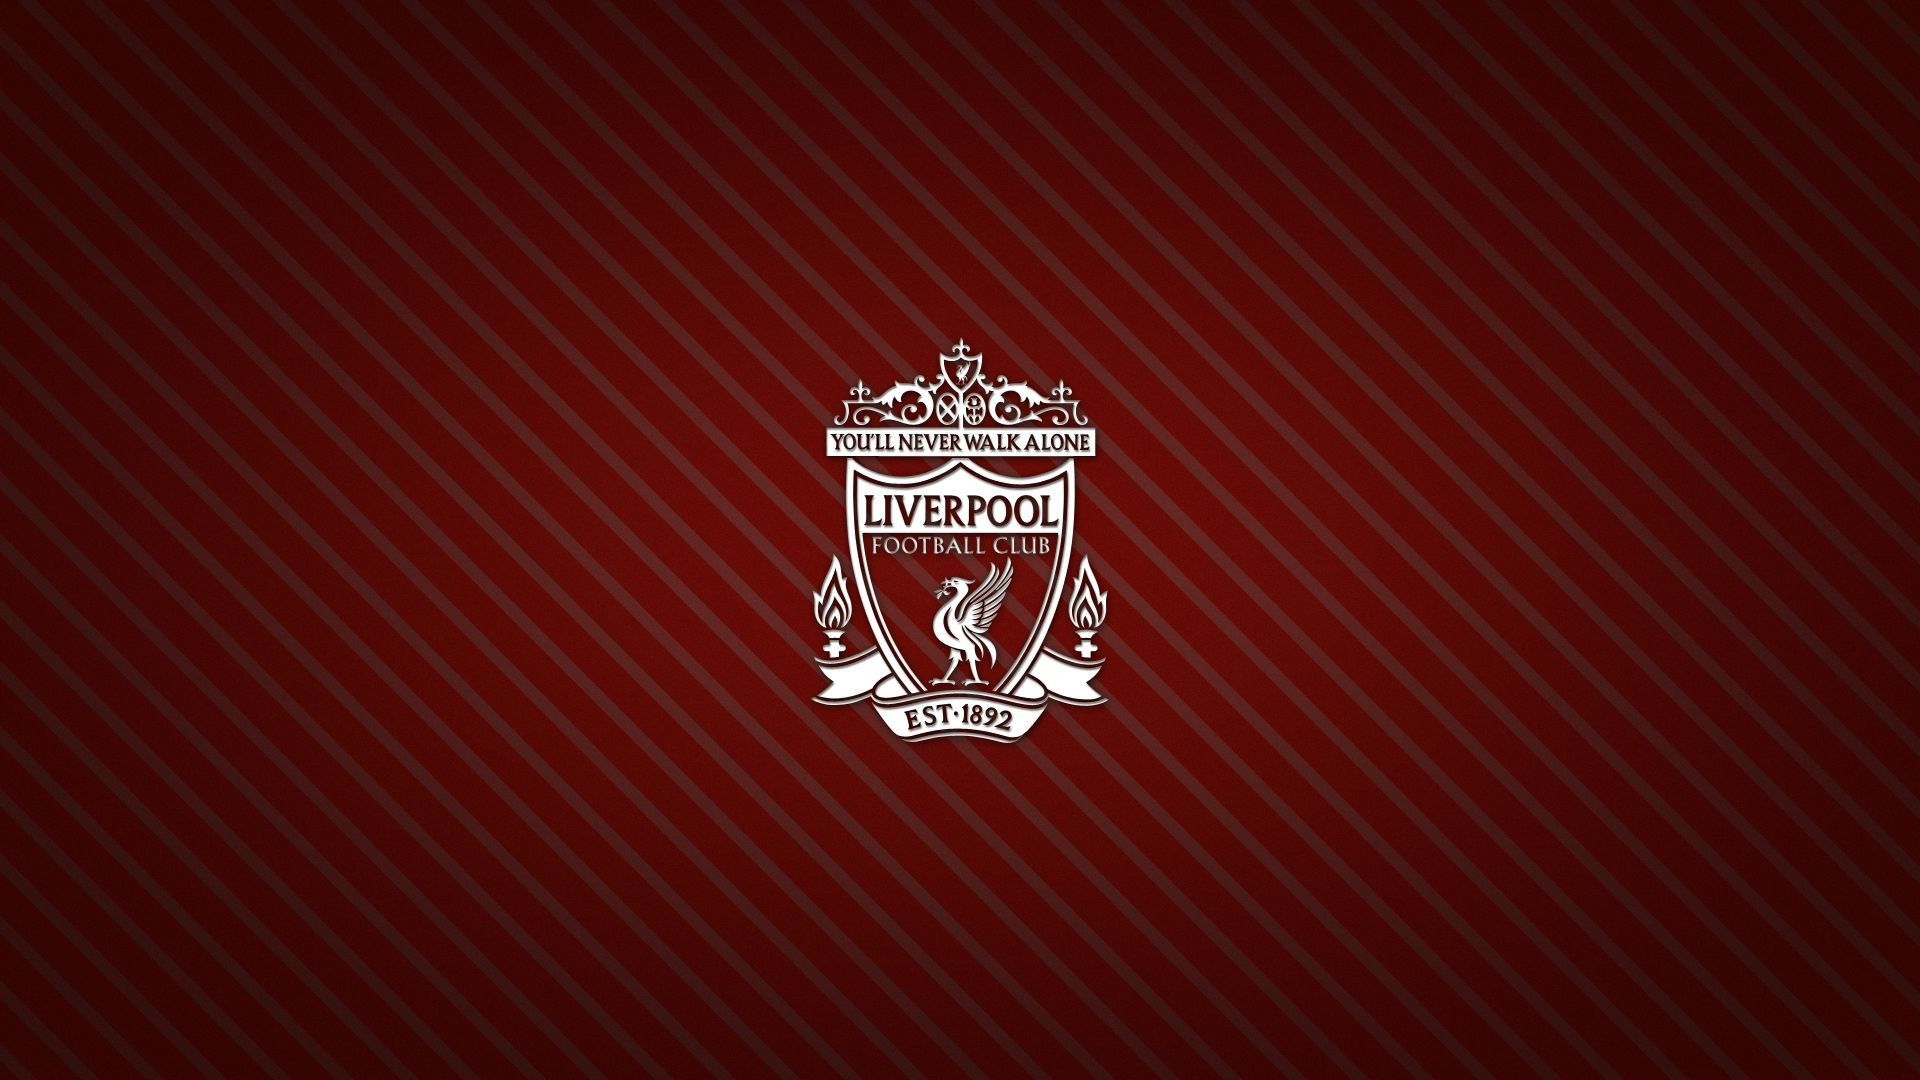 Liverpool 4k Wallpapers Top Free Liverpool 4k Backgrounds Wallpaperaccess